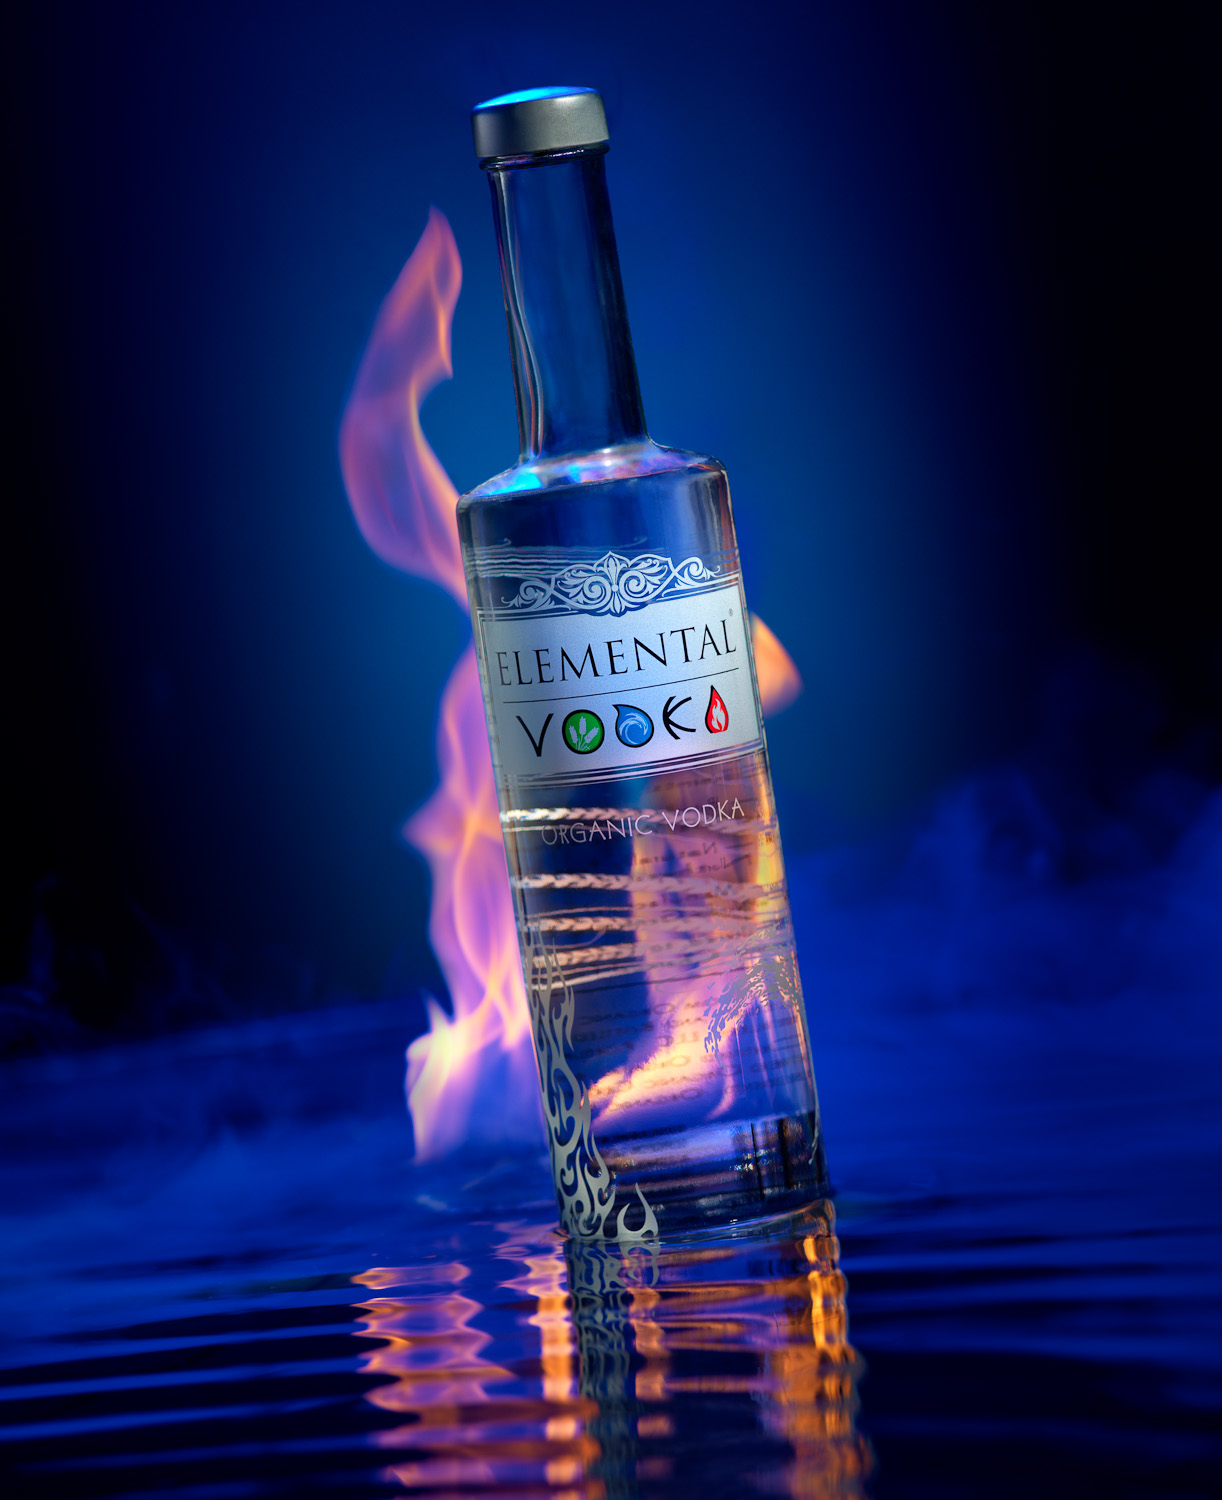 A bottle of Elemental Vodka with flames, smoke, and water